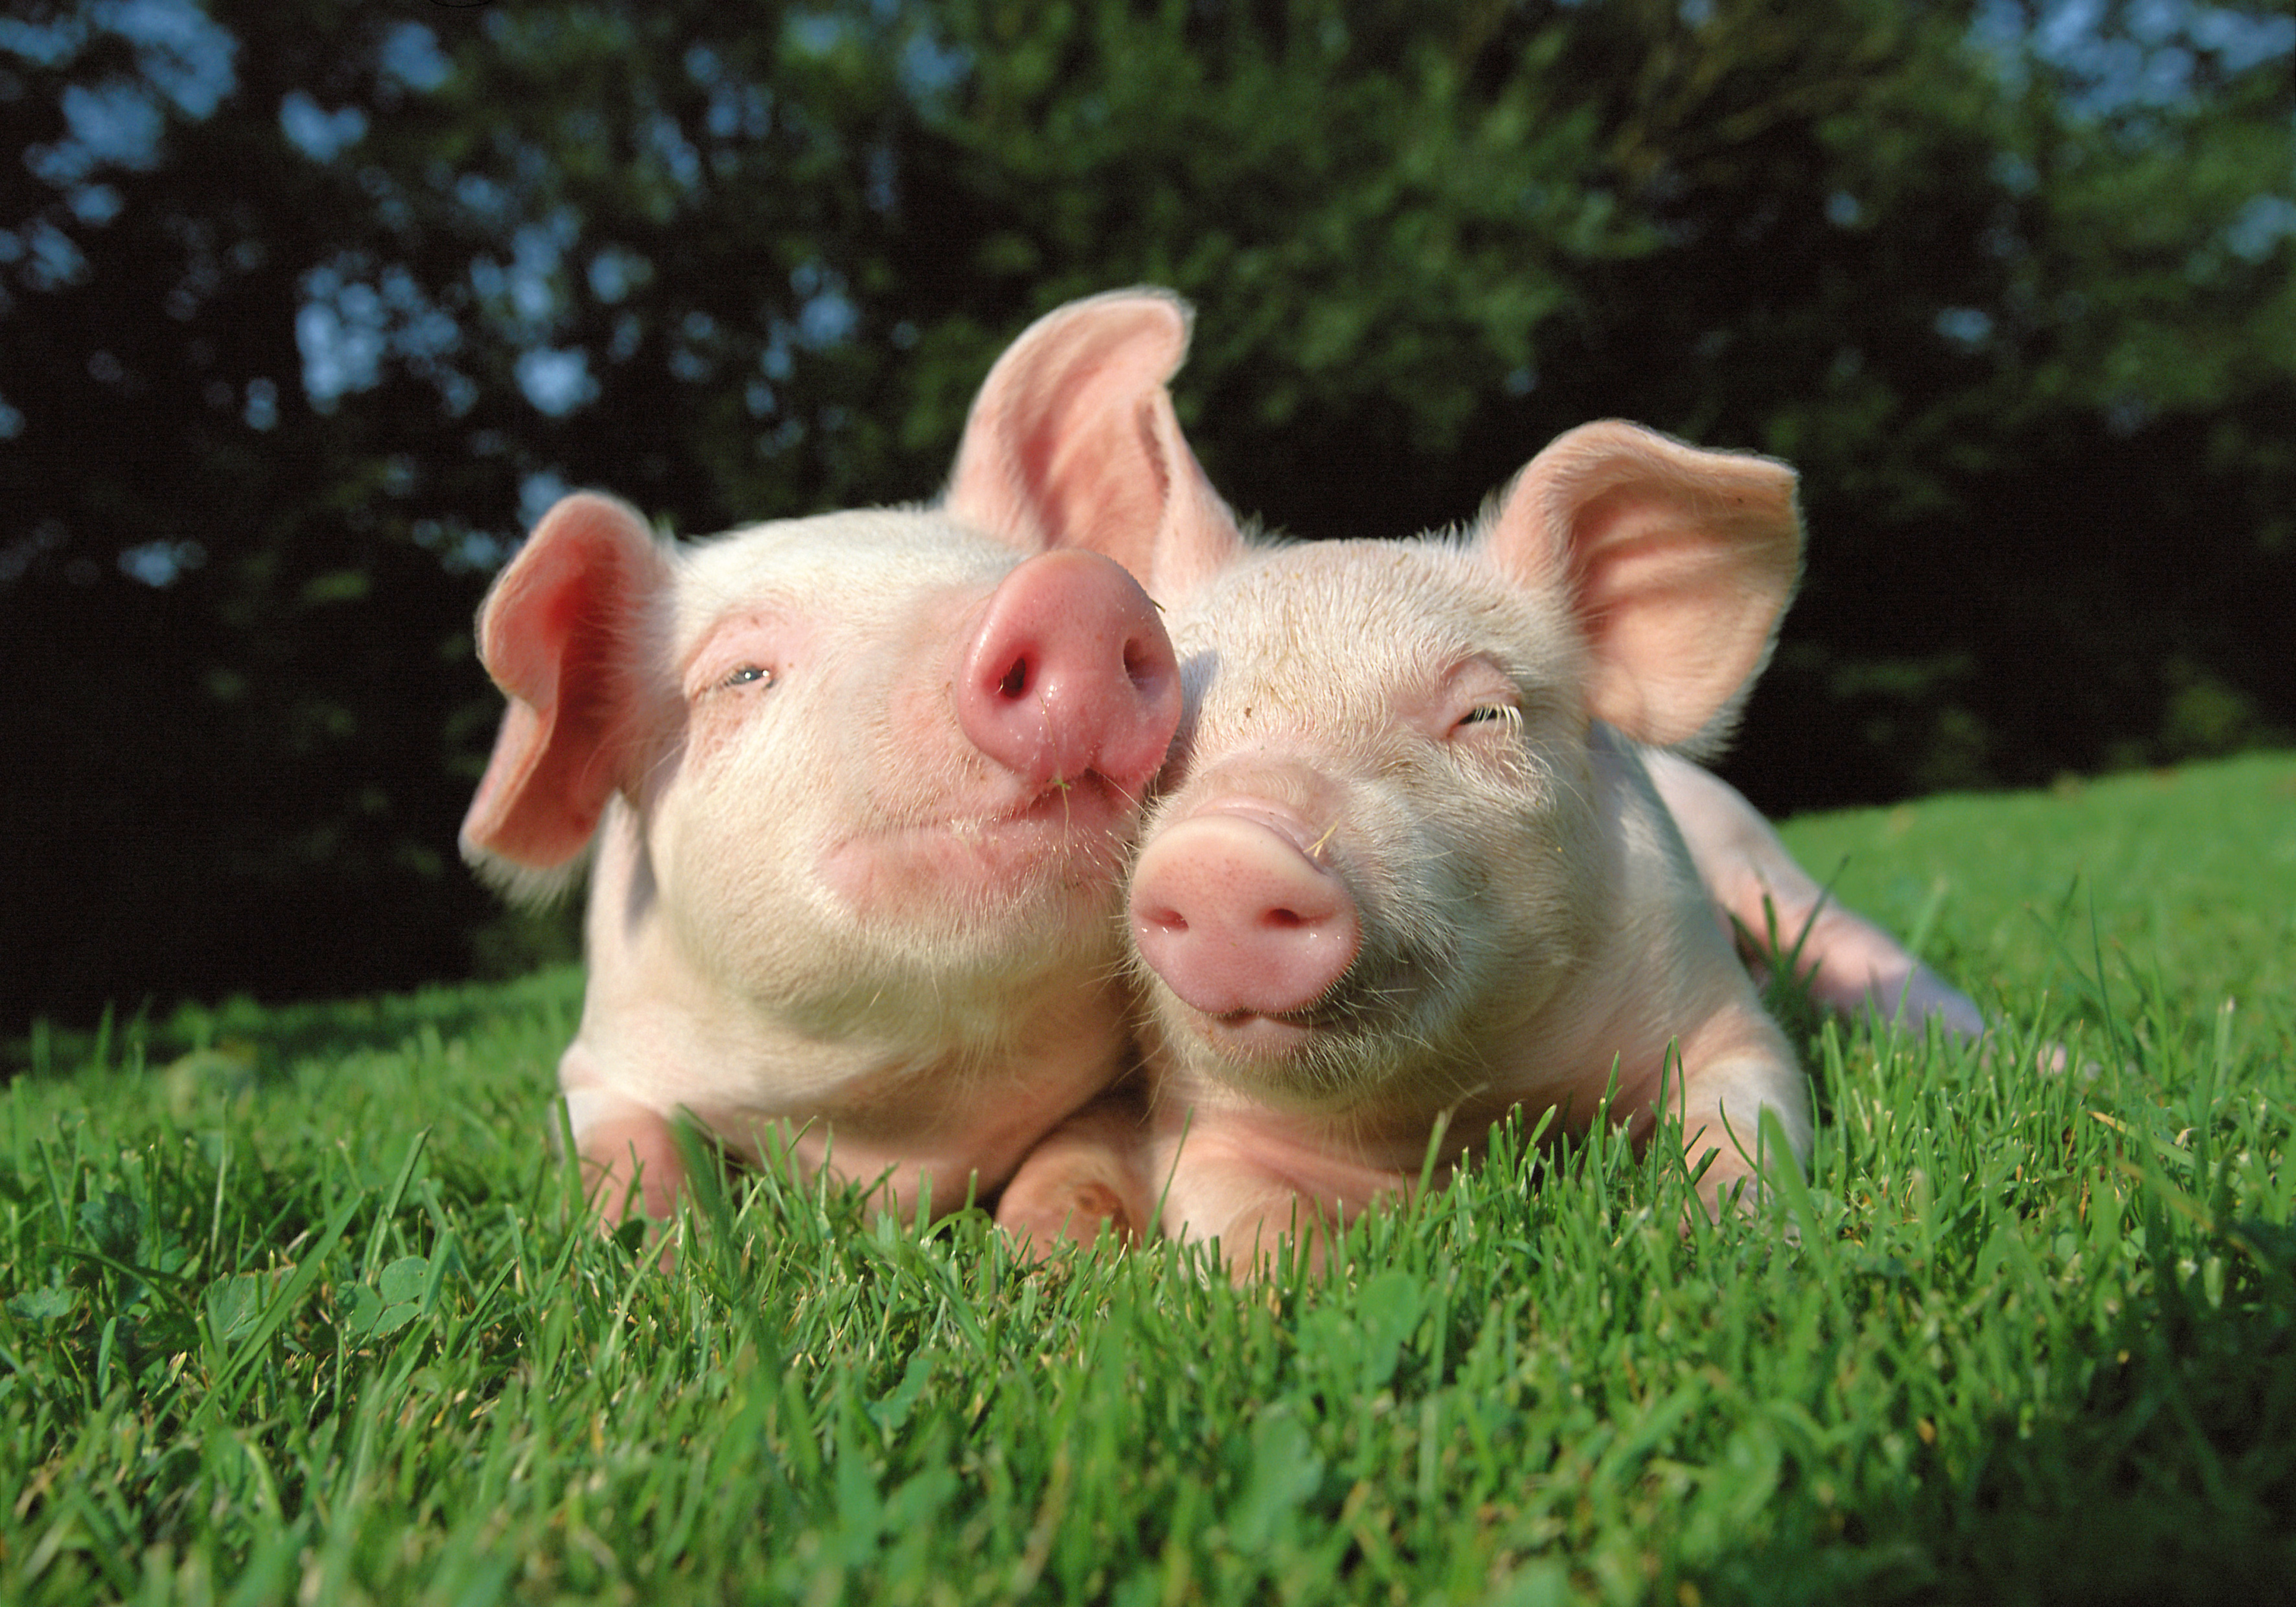 Cute pigs wallpapers and images   wallpapers pictures photos 5315x3720